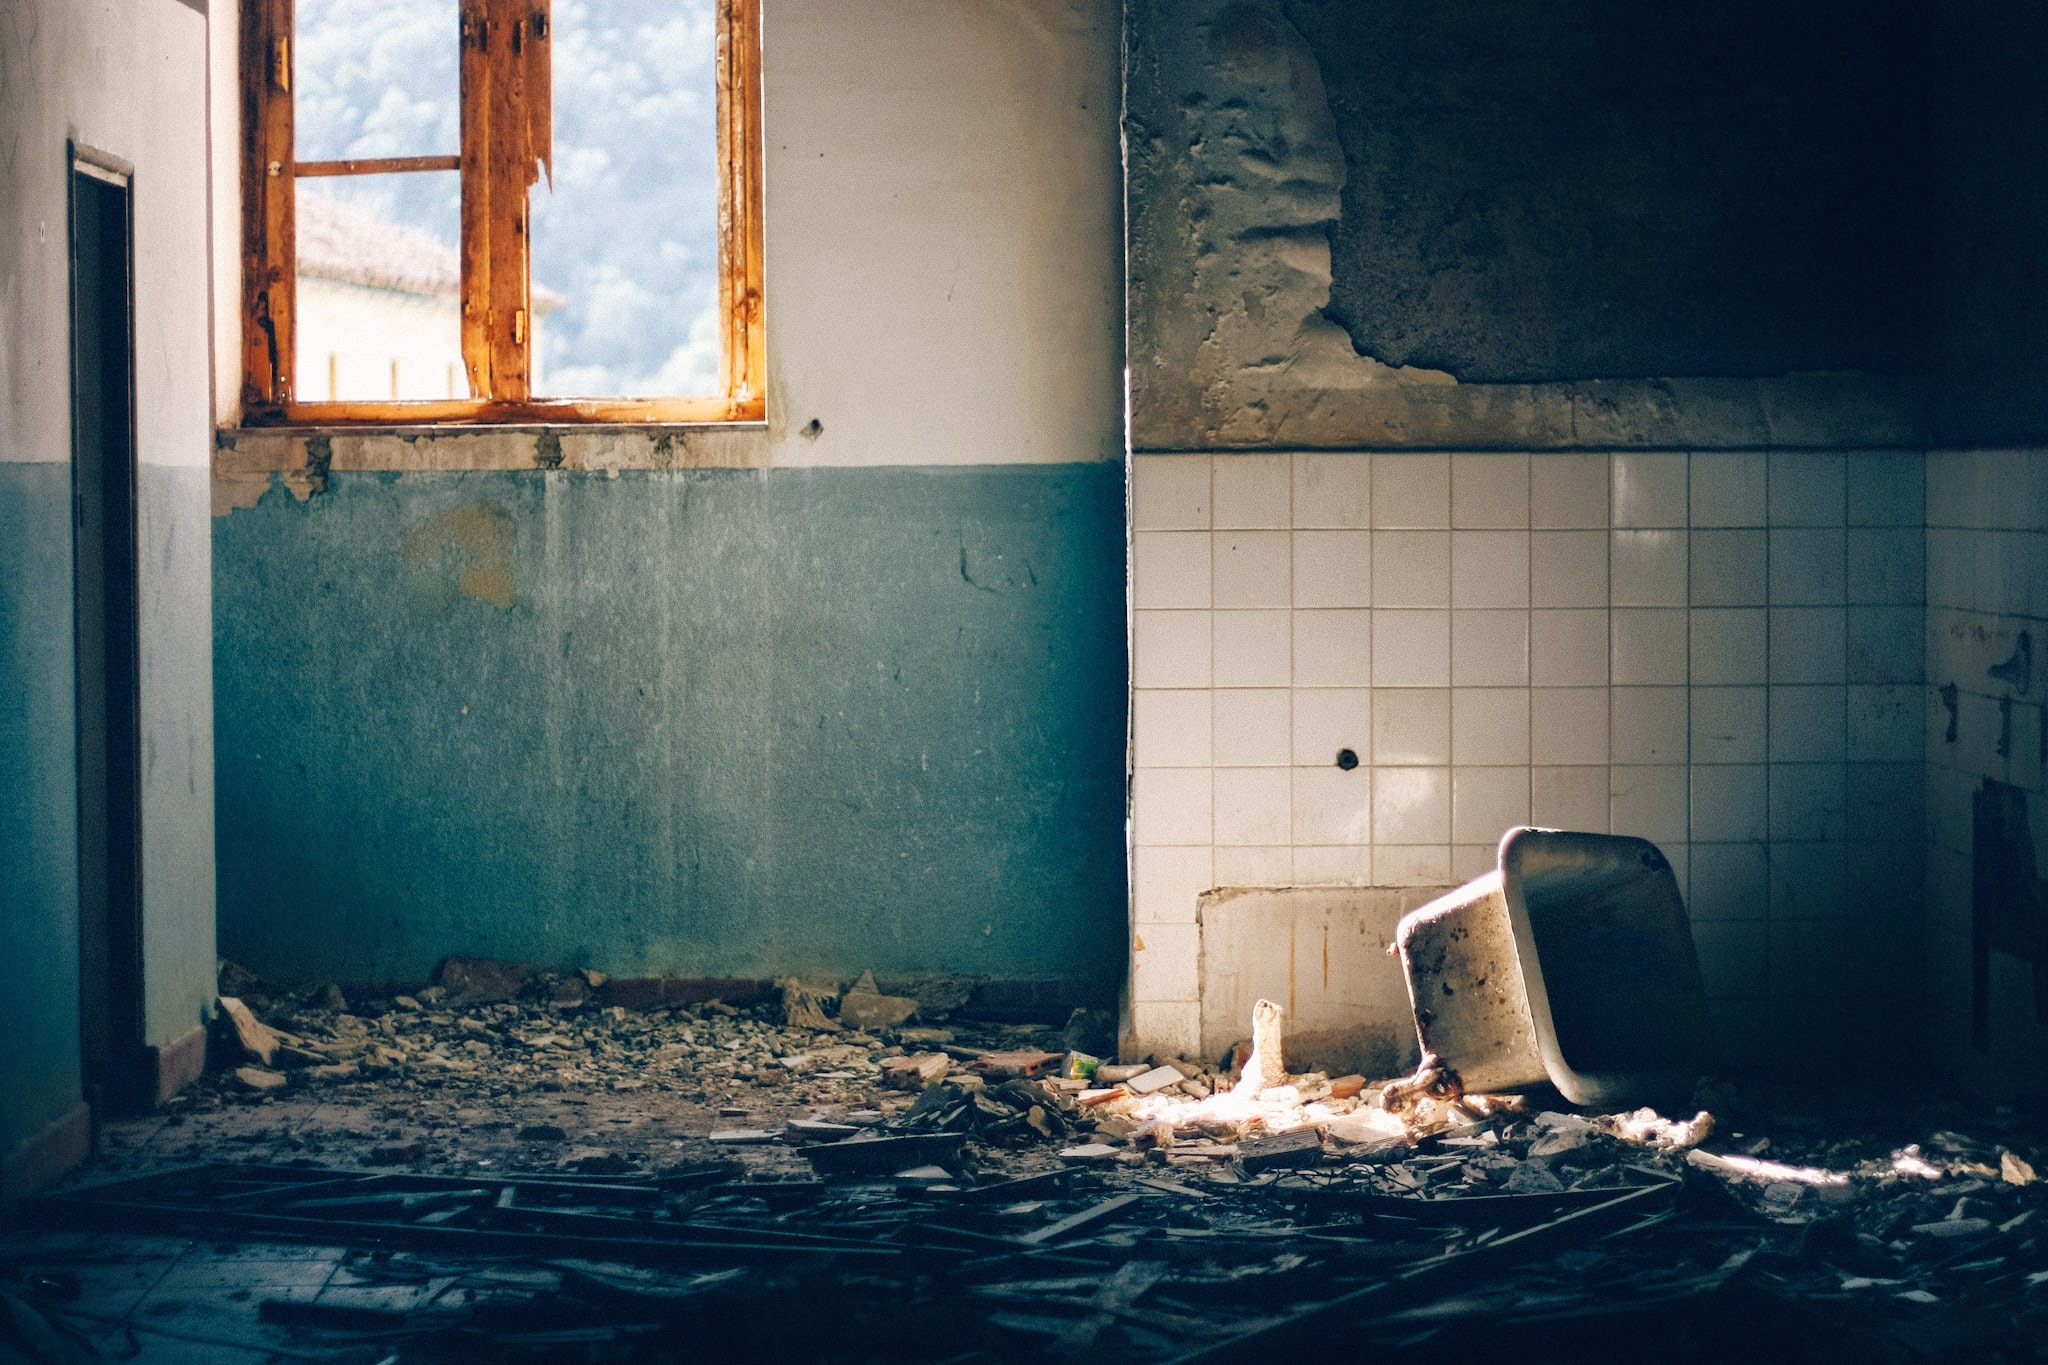 ruined sink inside house during daytime